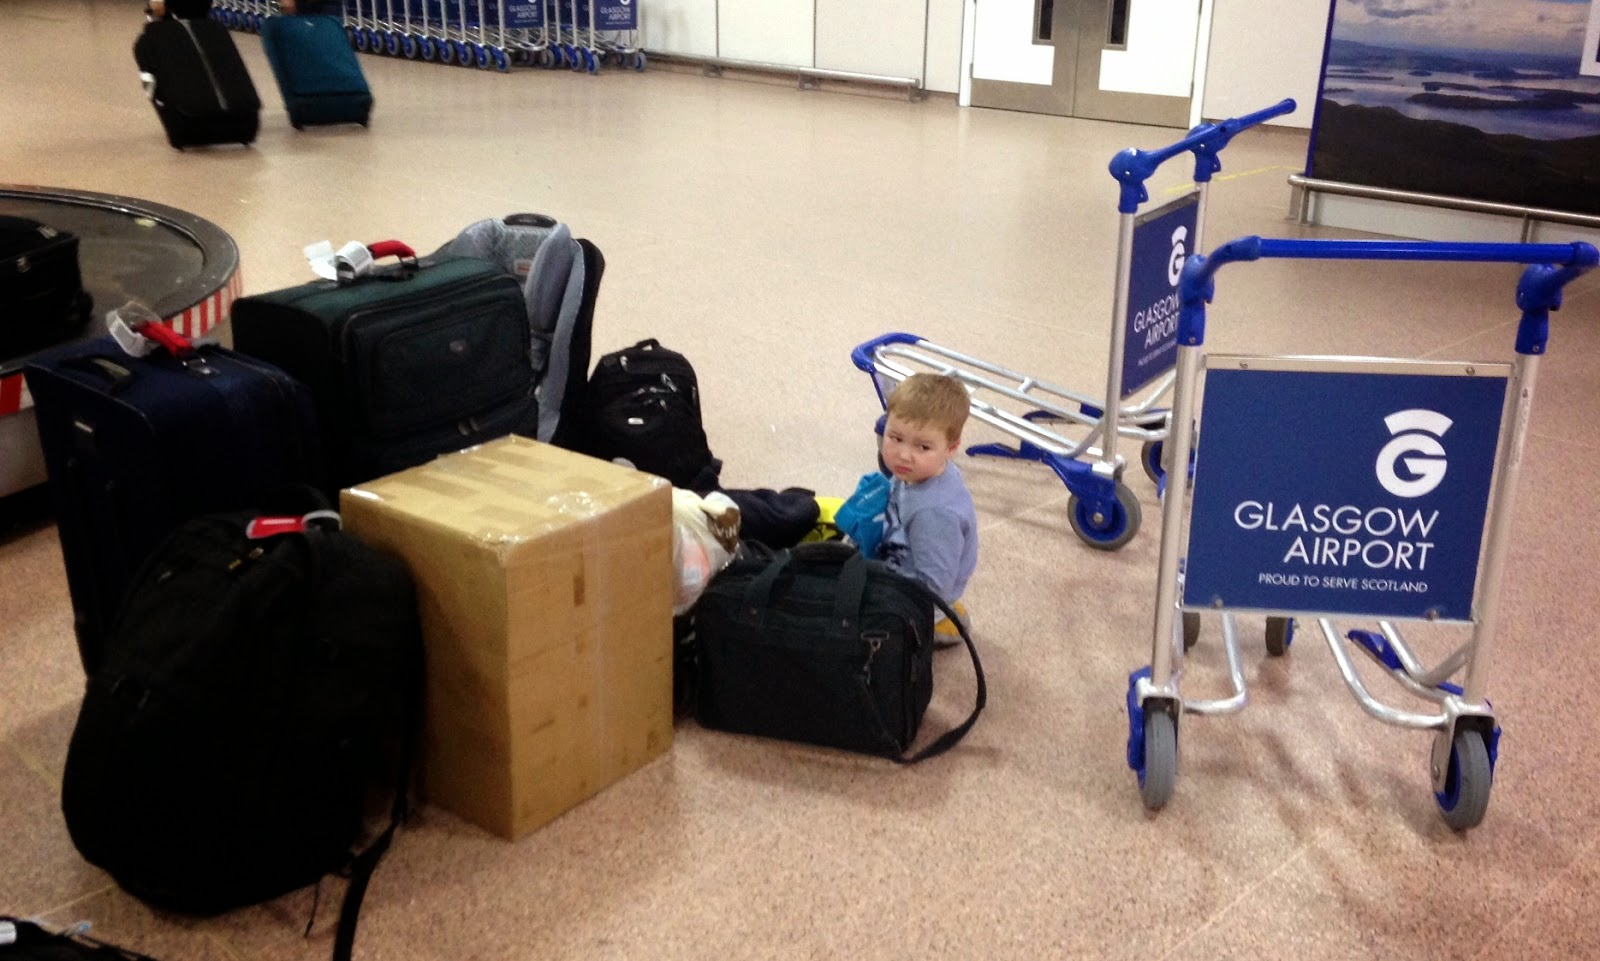 Lots of luggage at the airport